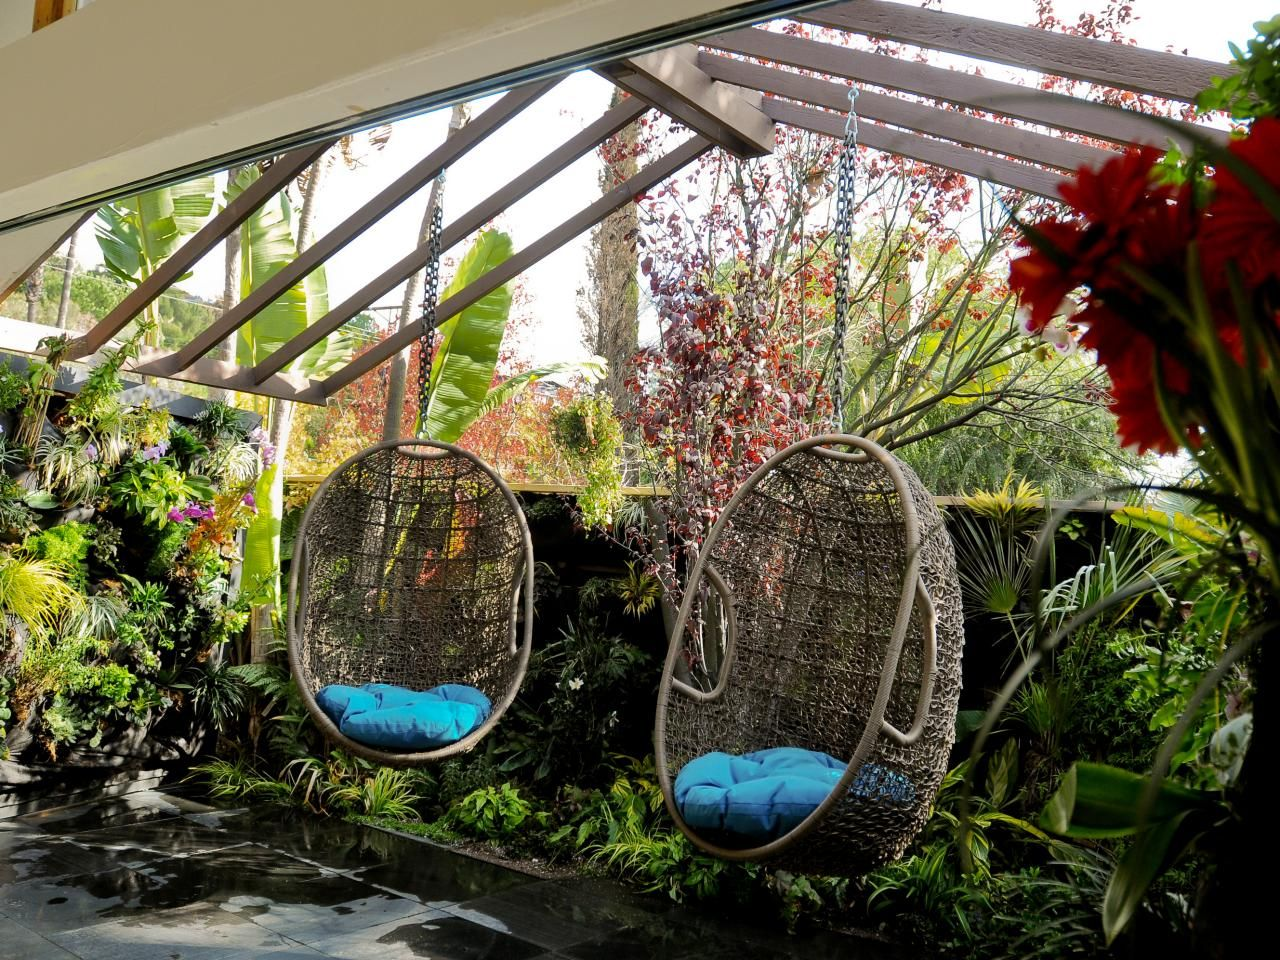 Vertical garden design with orchids space saving backyard landscaping - 20 Stunning Outdoor Living Design Ideas 20 Stunning Outdoor Living Room Design Ideas Moving Doors Covered With A Vertical Garden Of Orchids